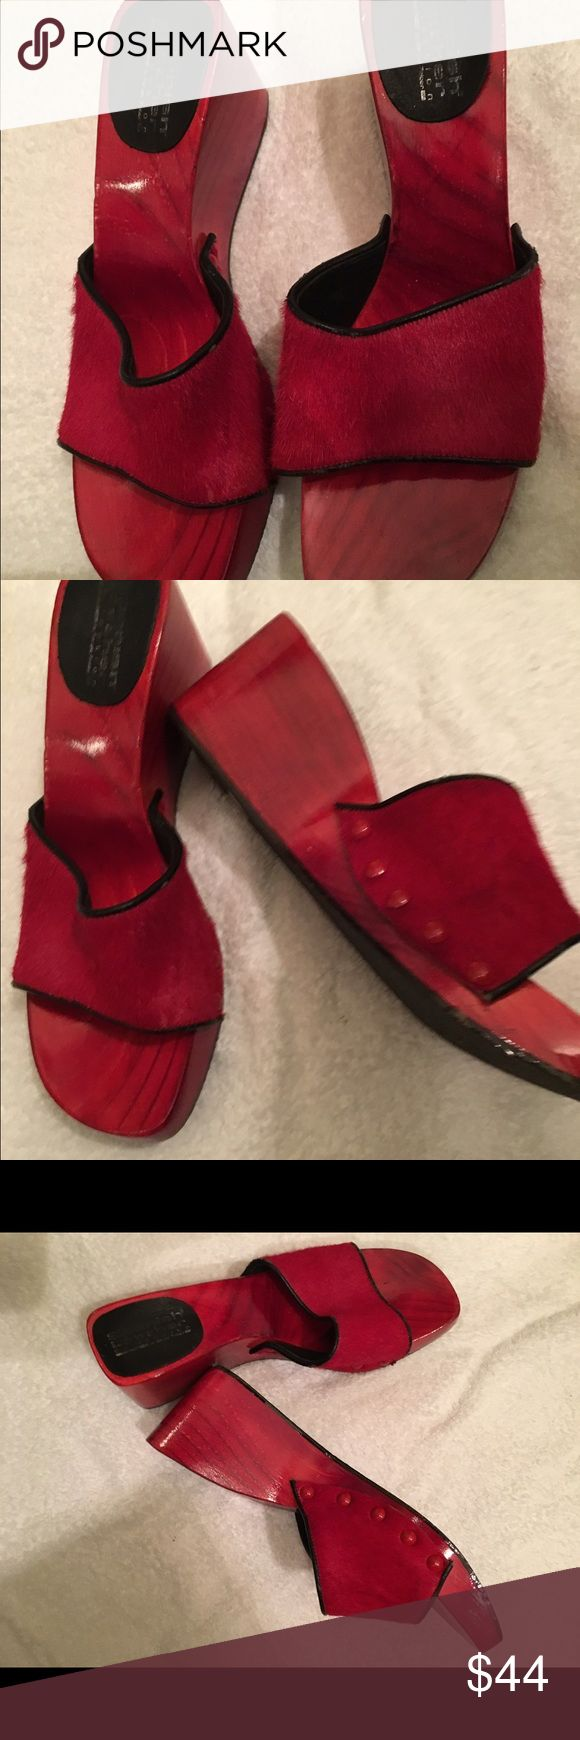 Spanish brick red wedge heel and calf leather Spanish leather brick red wedges and calf leather shoes the Designer is Spanish Leather size 7.50 spanish leather Shoes Wedges